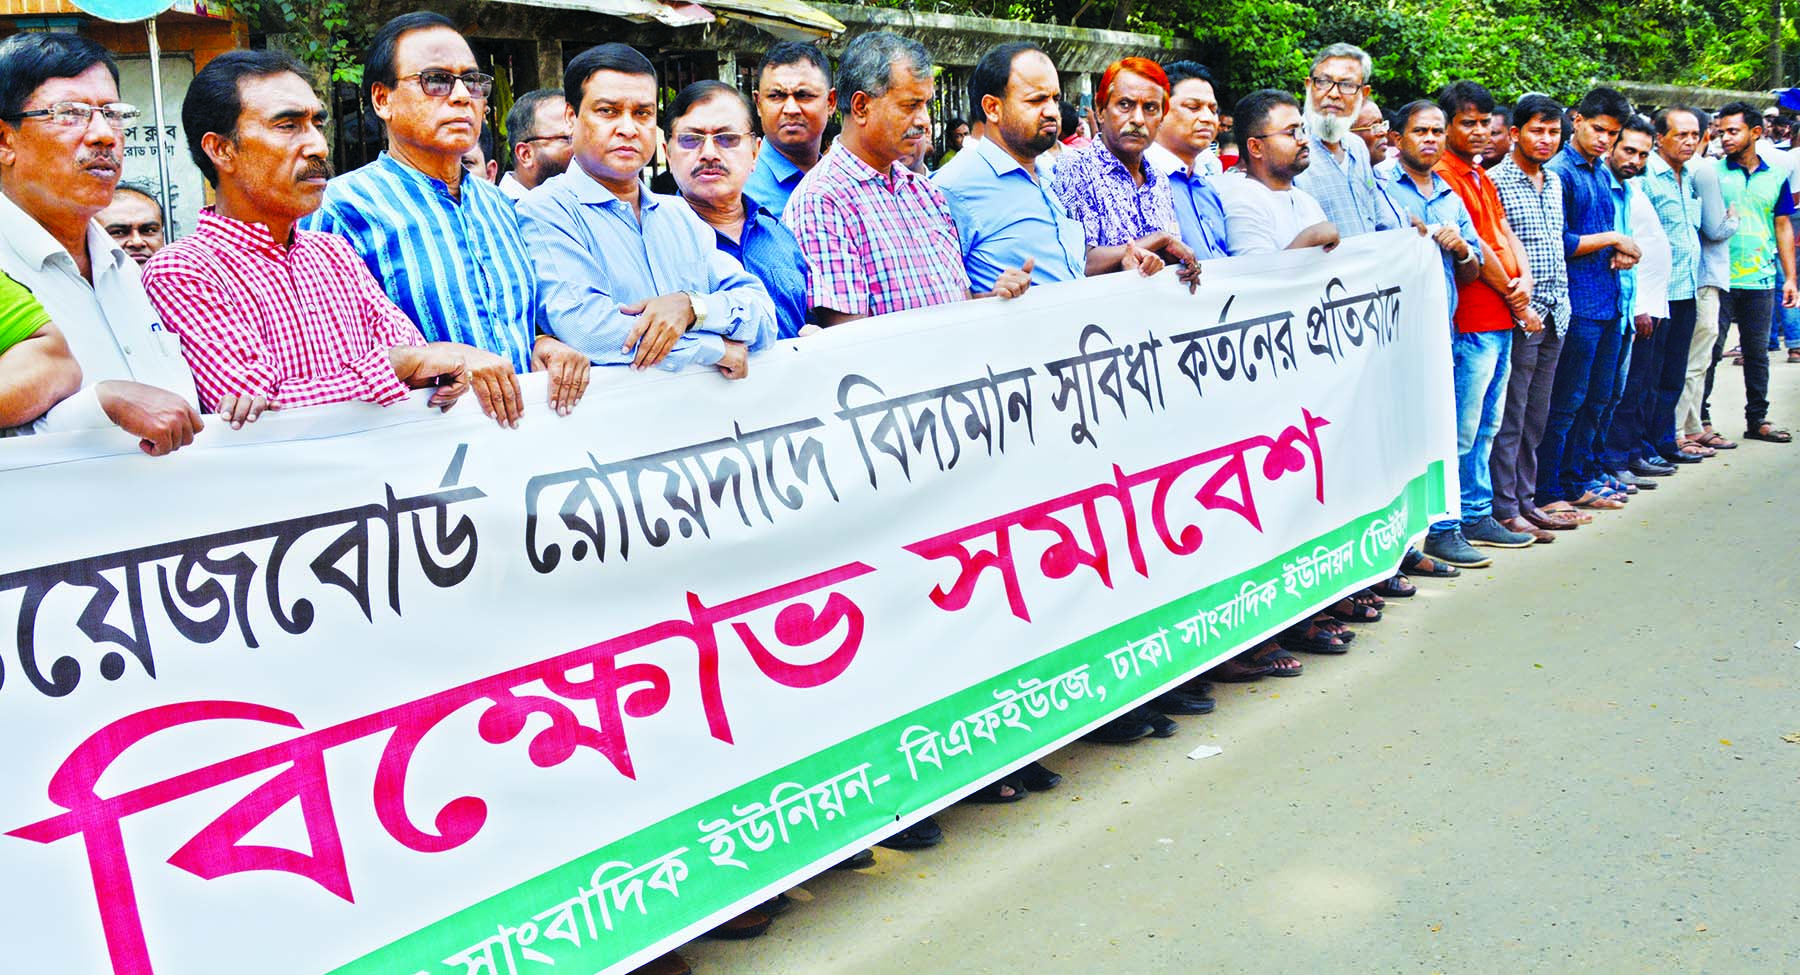 A faction of BFUJ and DUJ formed a human chain in front of the Jatiya Press Club on Tuesday in protest against cutting existing facilities in the Ninth Wage Board Award.